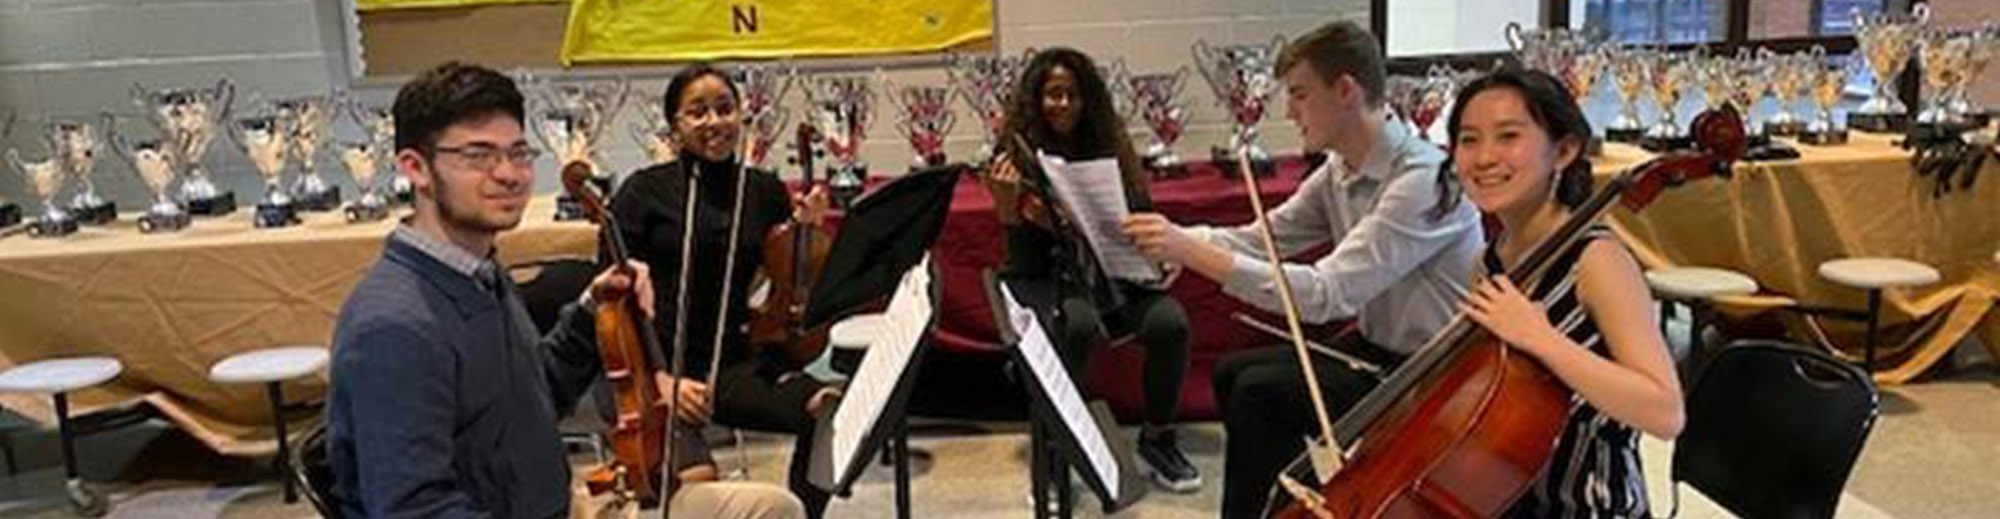 Group of students sitting with their stringed instruments